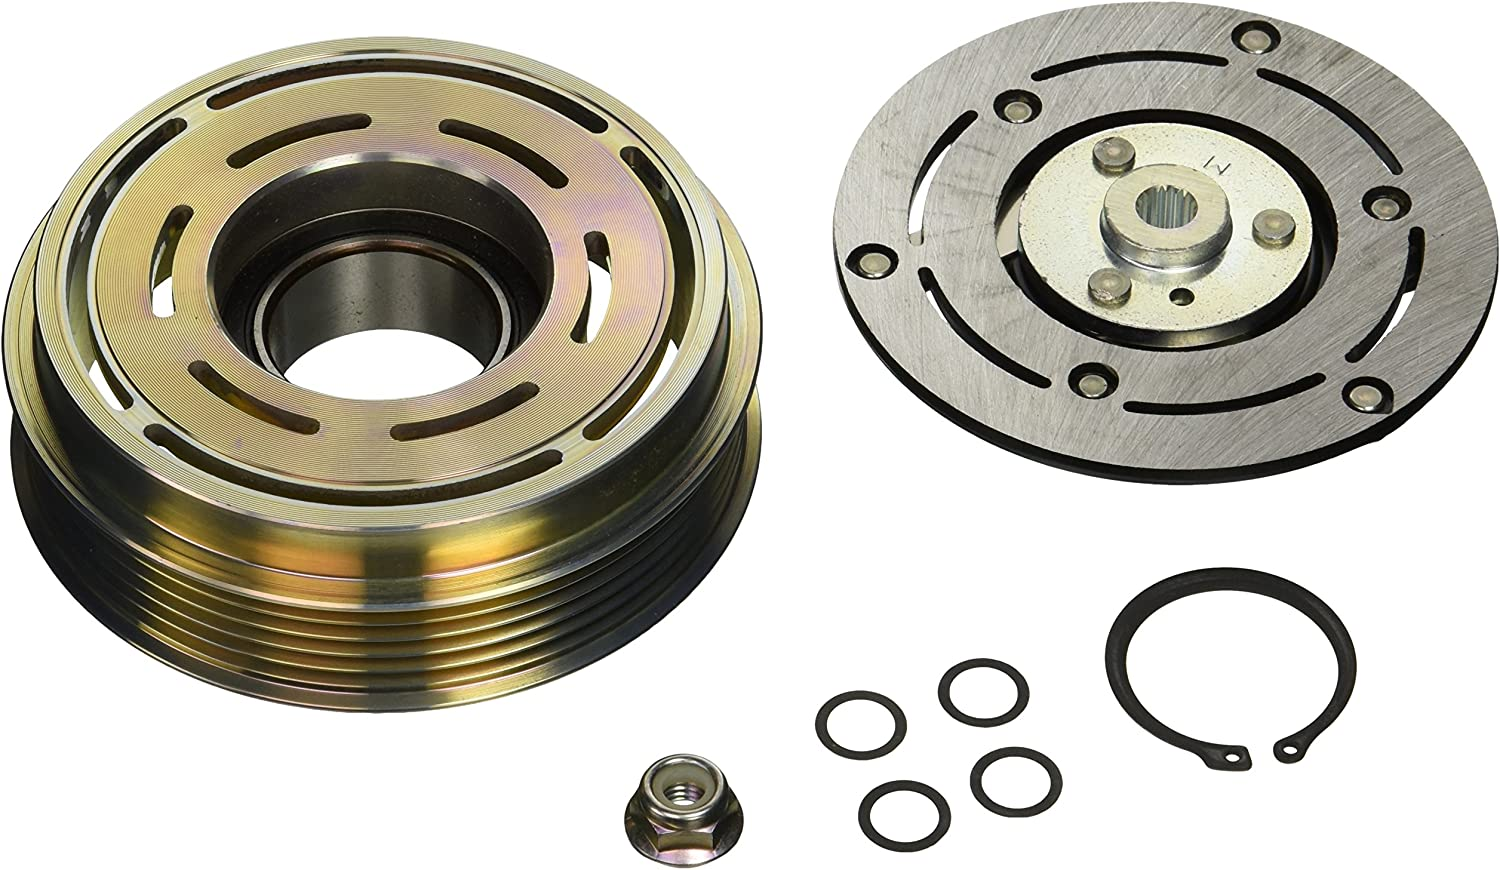 Genuine Honda 38900-PNB-006 Compressor Clutch Set